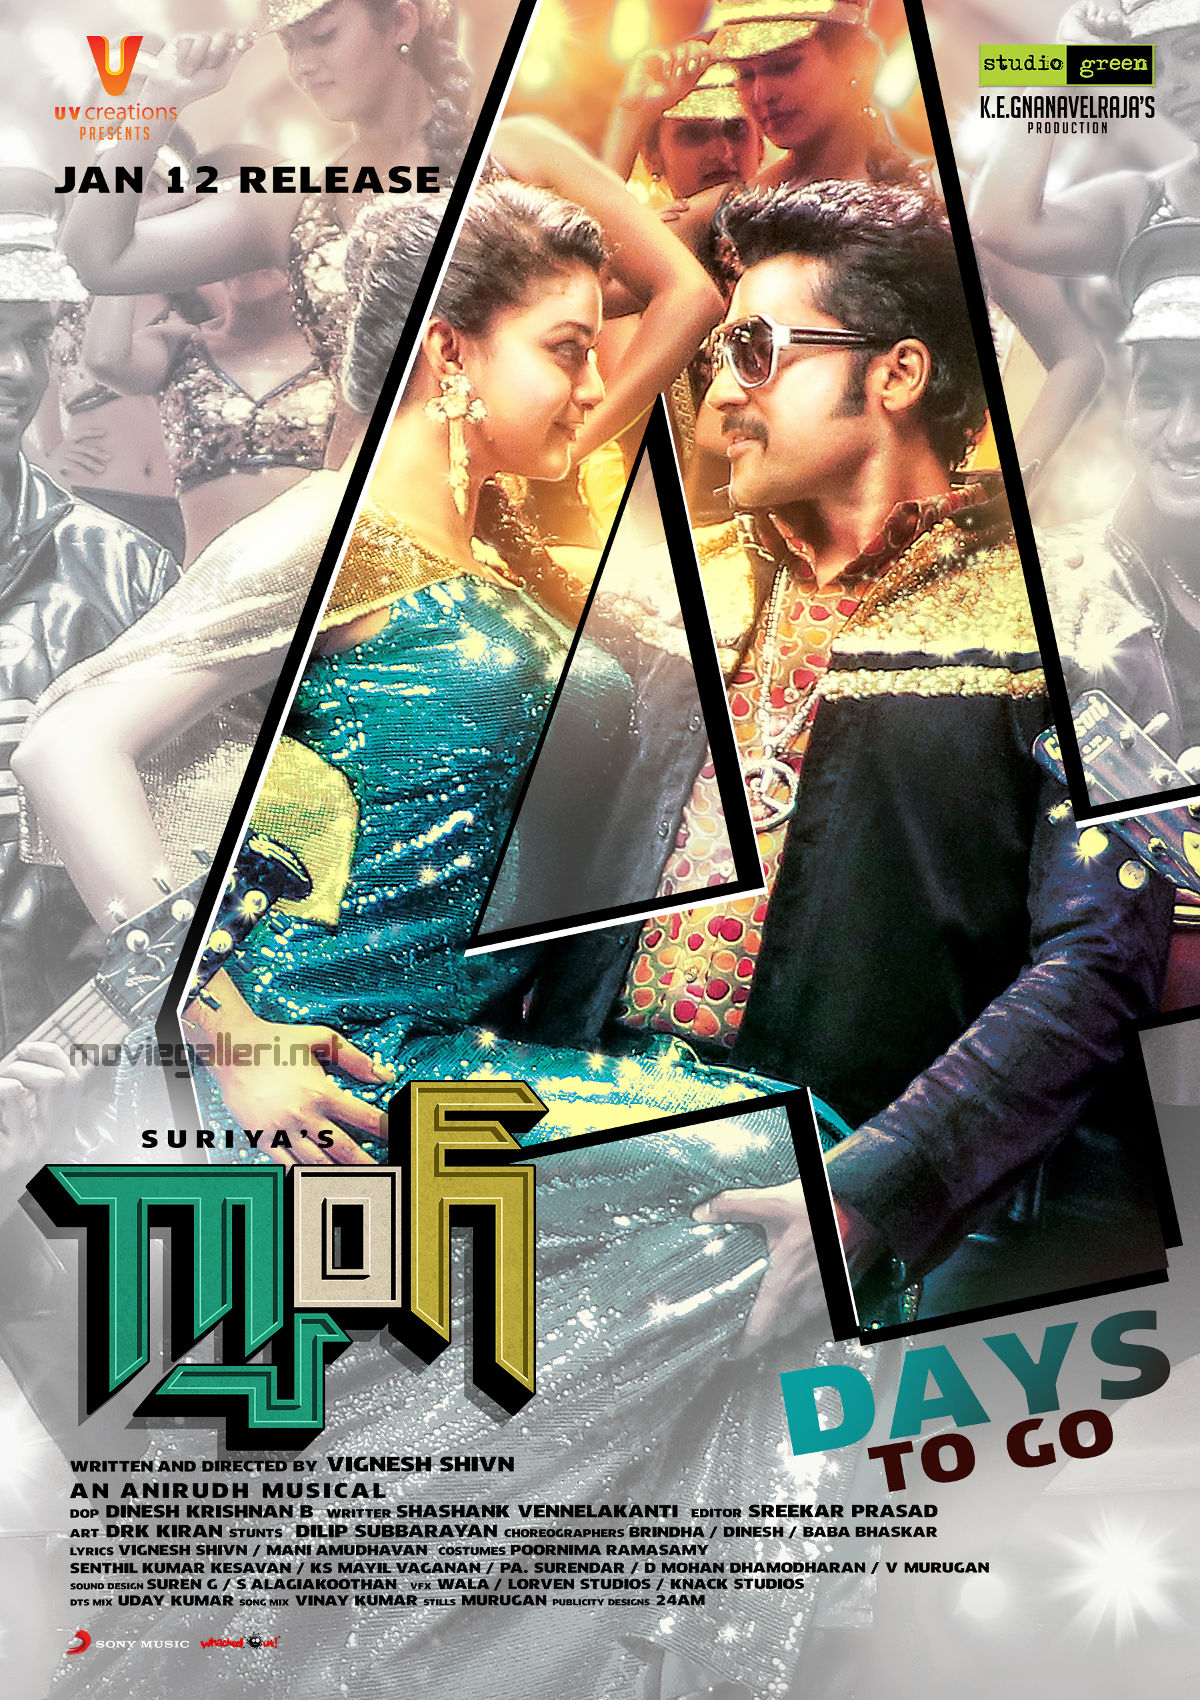 Gang Movie 3 Days to Go Poster HD | New Movie Posters